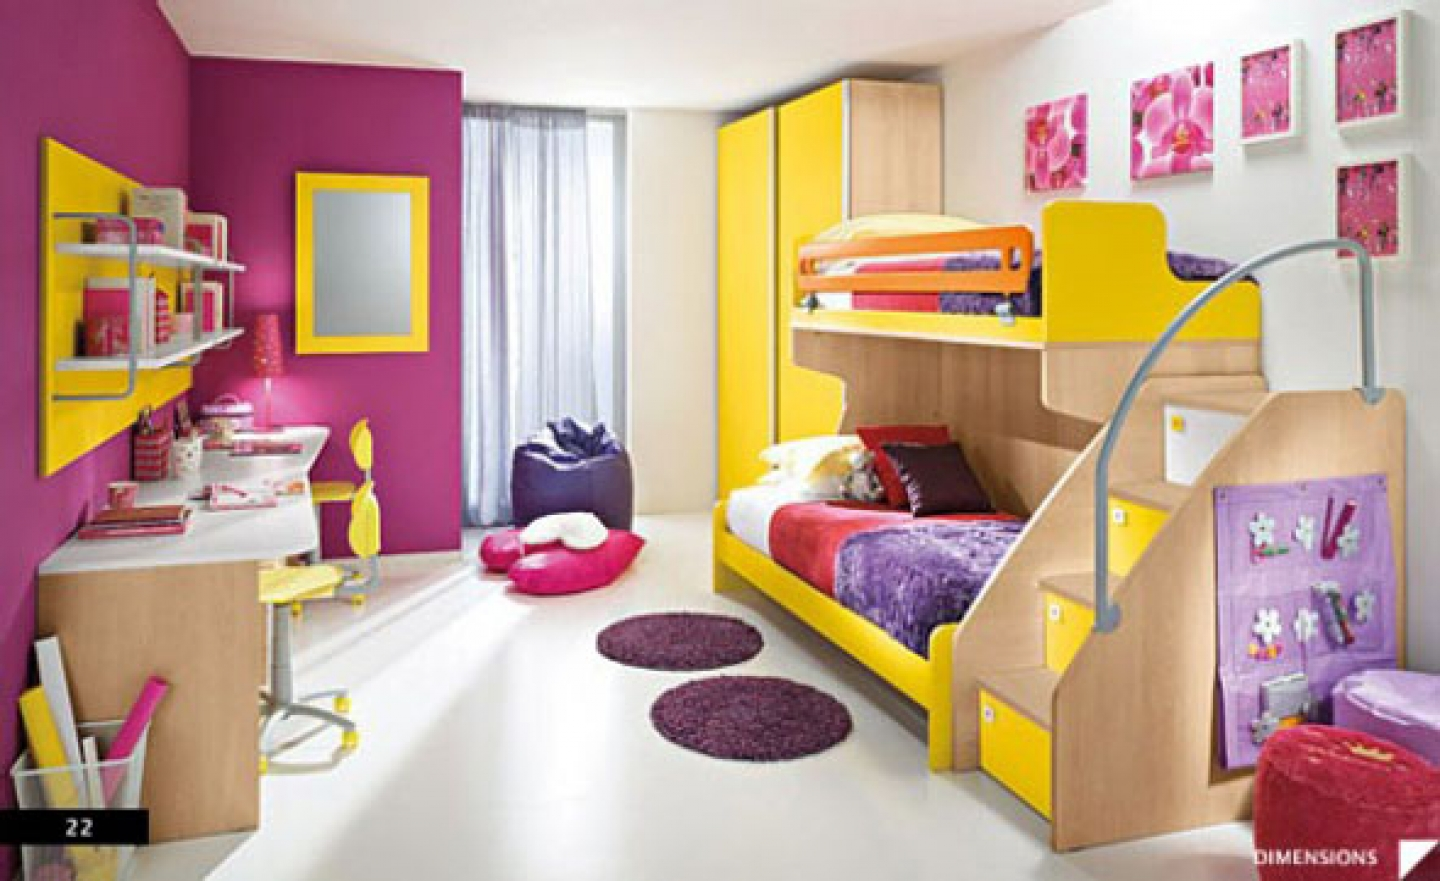 Amazing This Bedroom Is For Two Small Girls, It Has Yellow Simple Furniture And A  Mix Of Pink And White Wall.